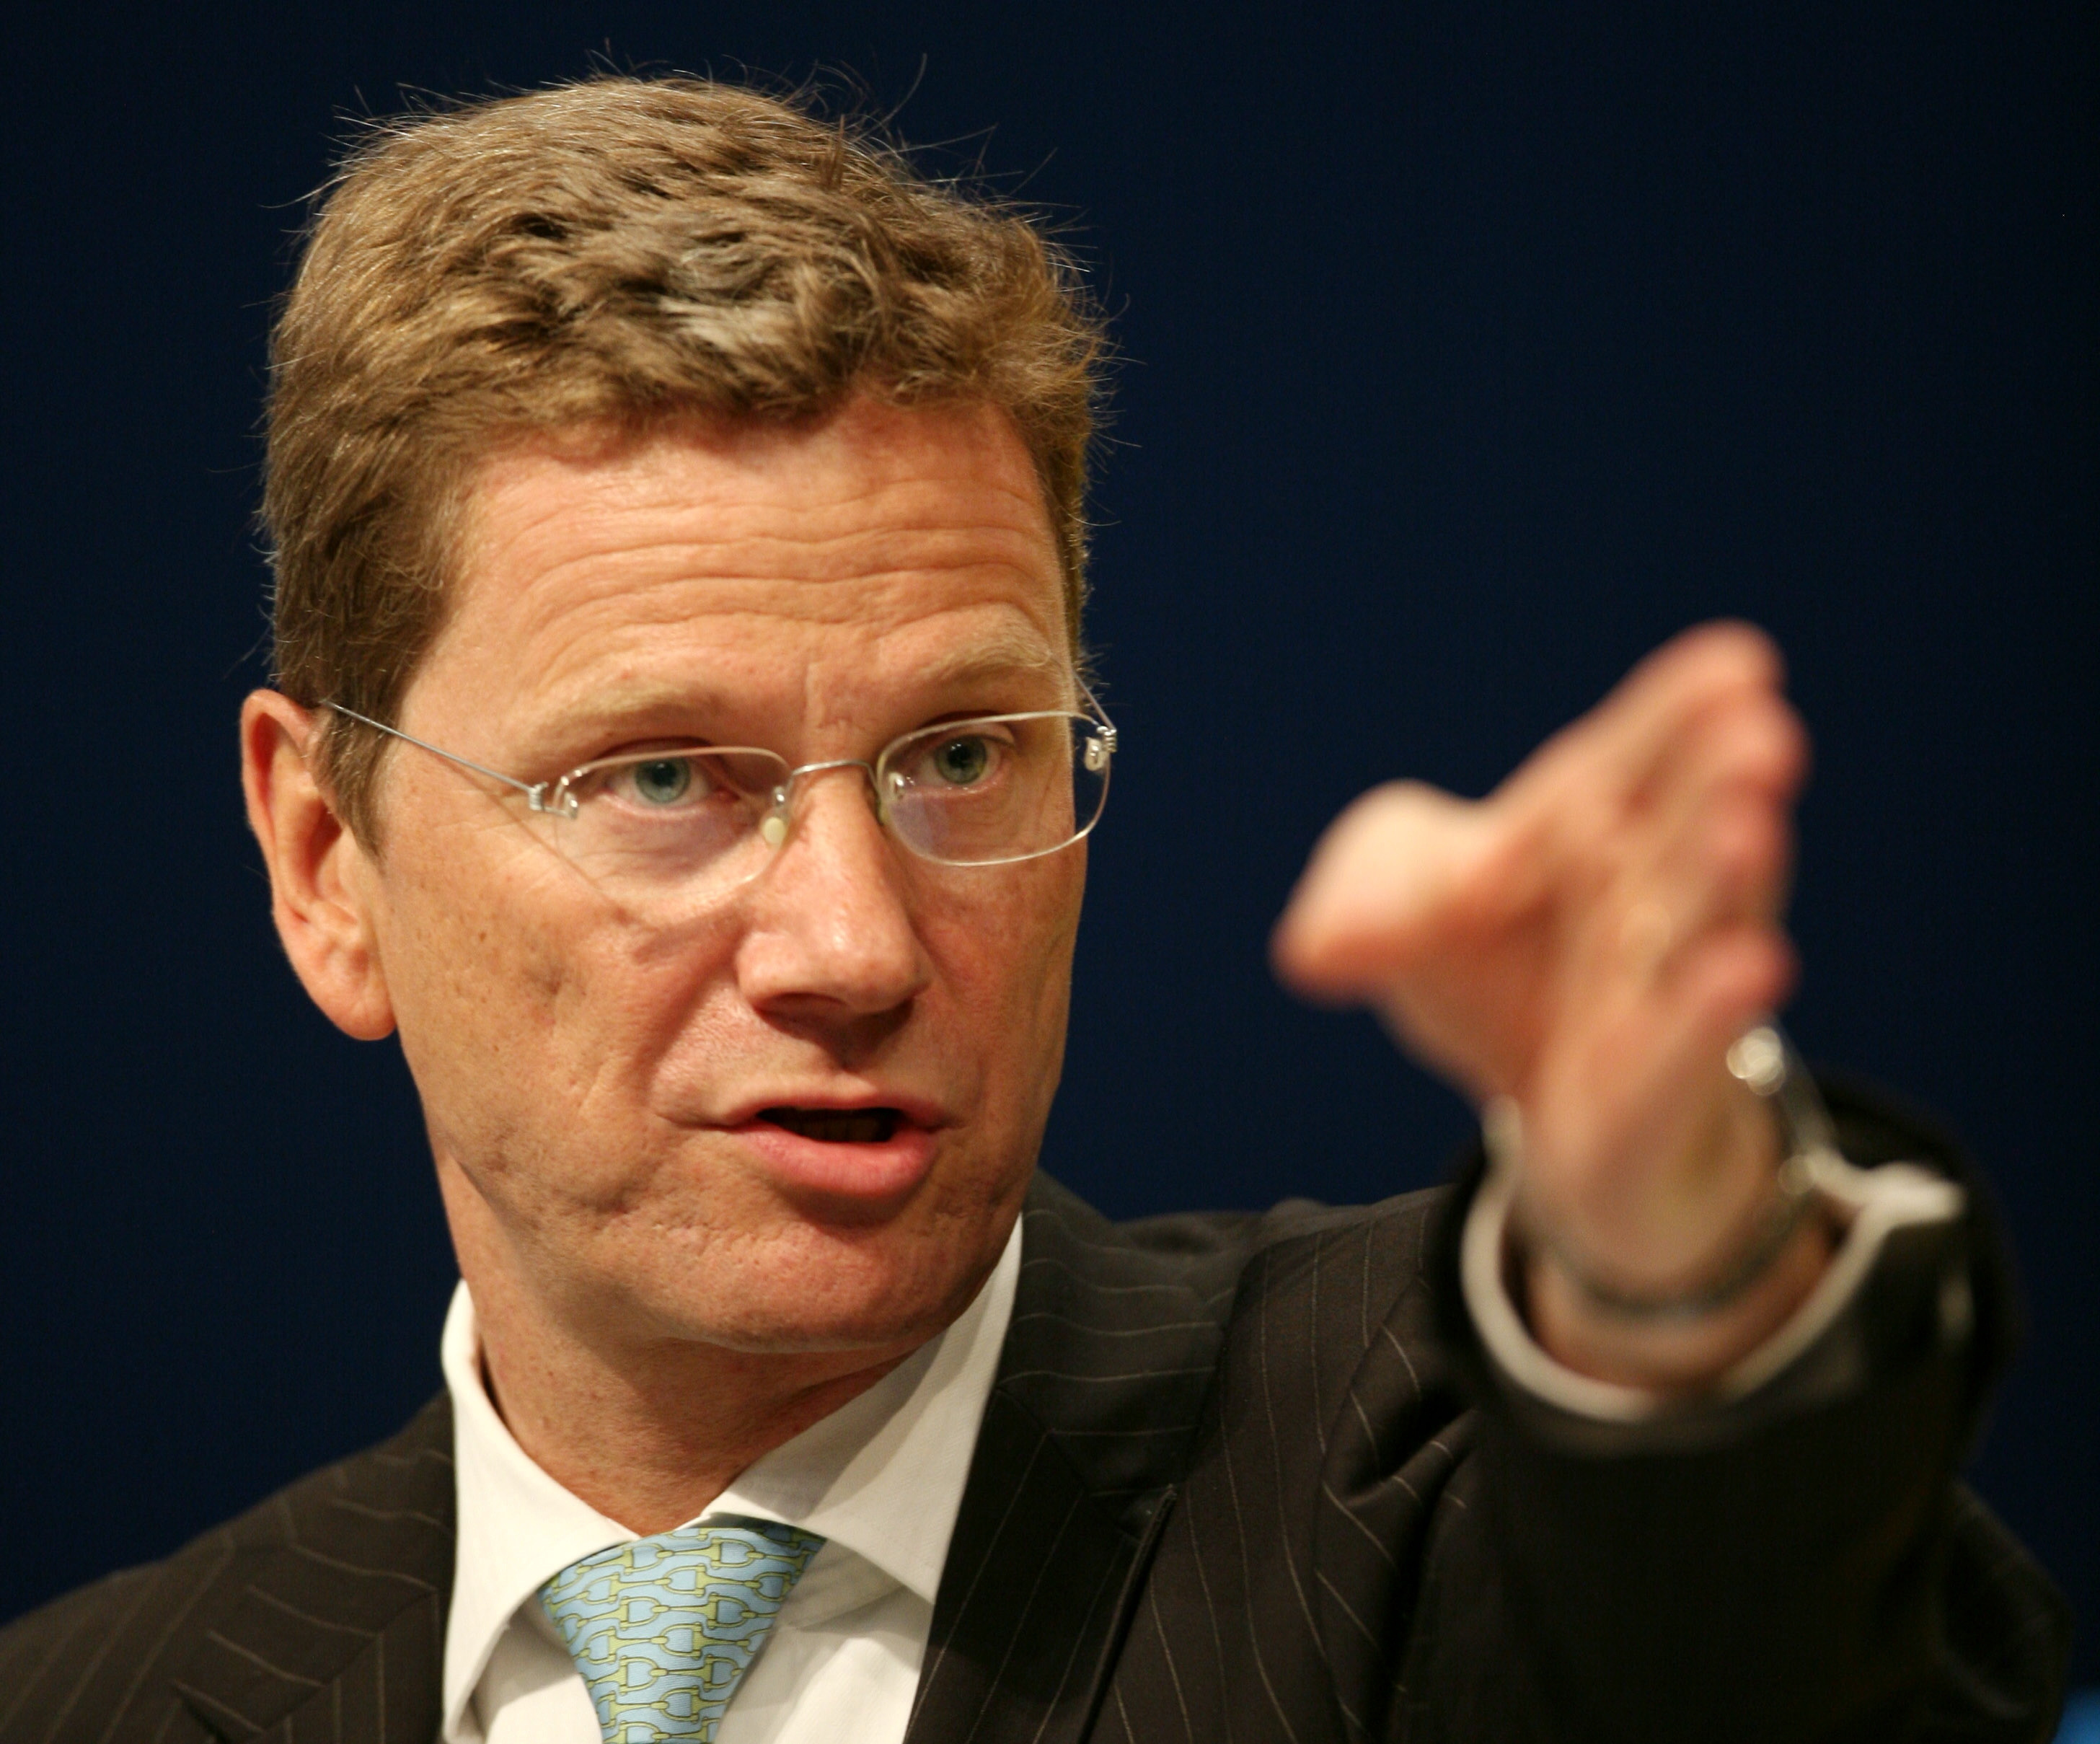 Berlin expects Serbia to implement the Brussels agreement